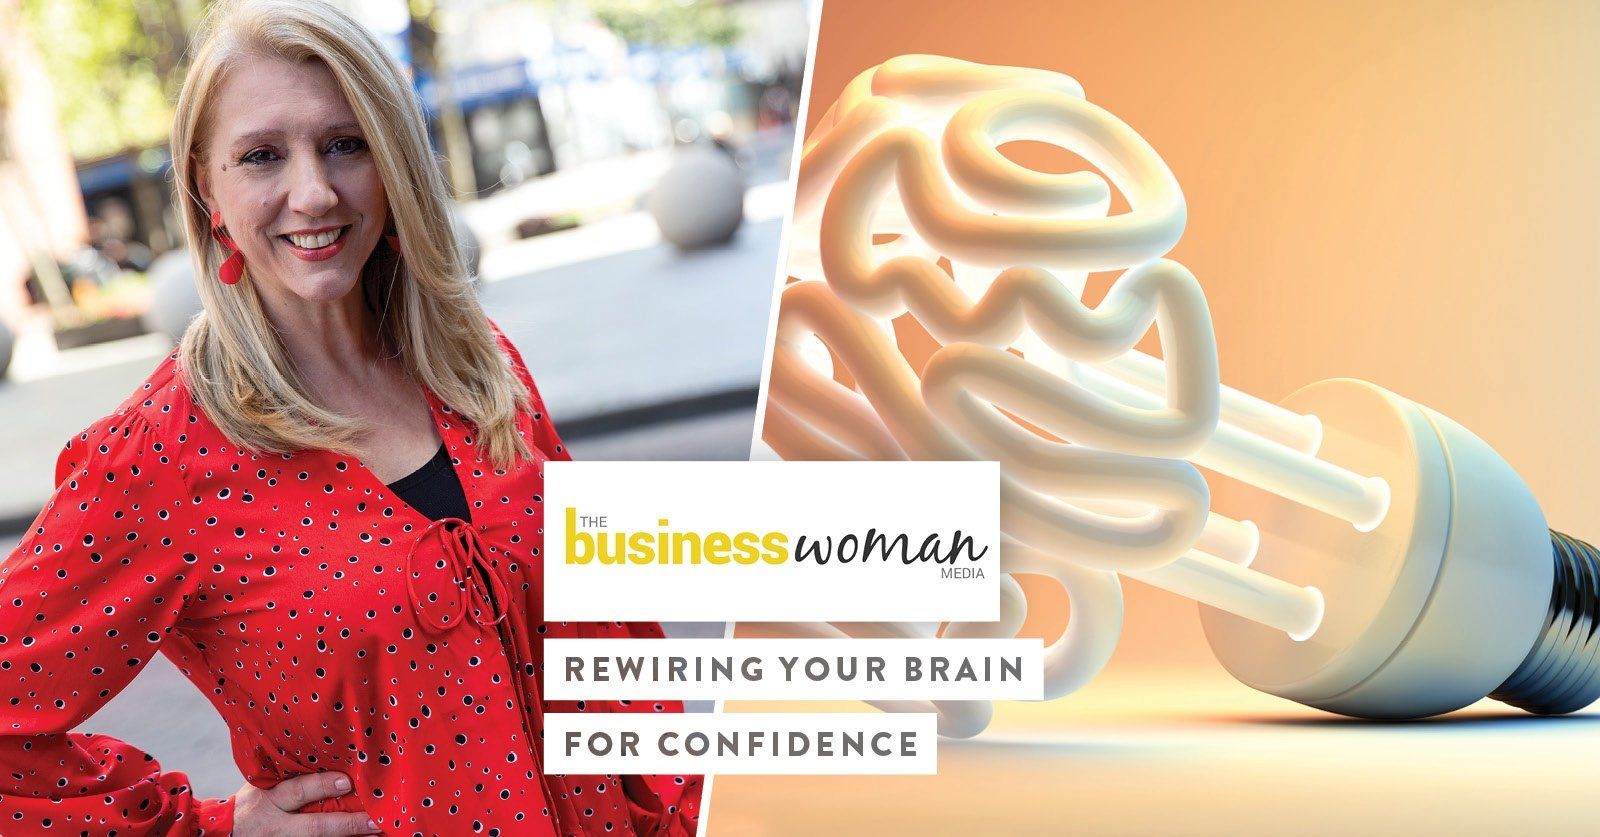 Business Woman Media: Rewiring Your Brain For Confidence